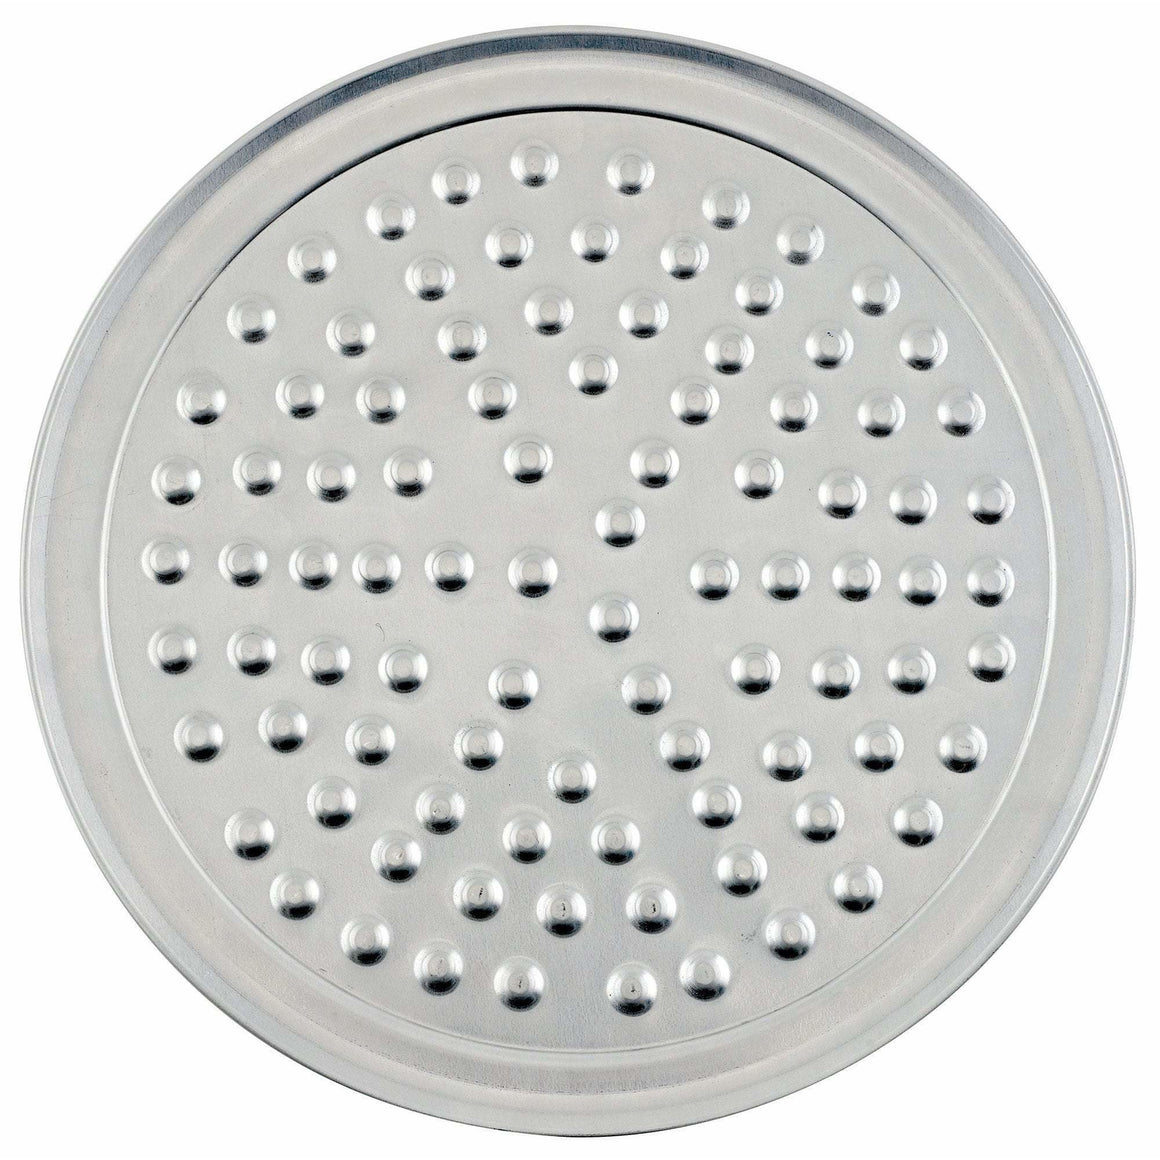 "Winco - APZN-6 - Aluminum Wide Rim Pizza Tray with Nibs, 6"" - Pizza Supplies"